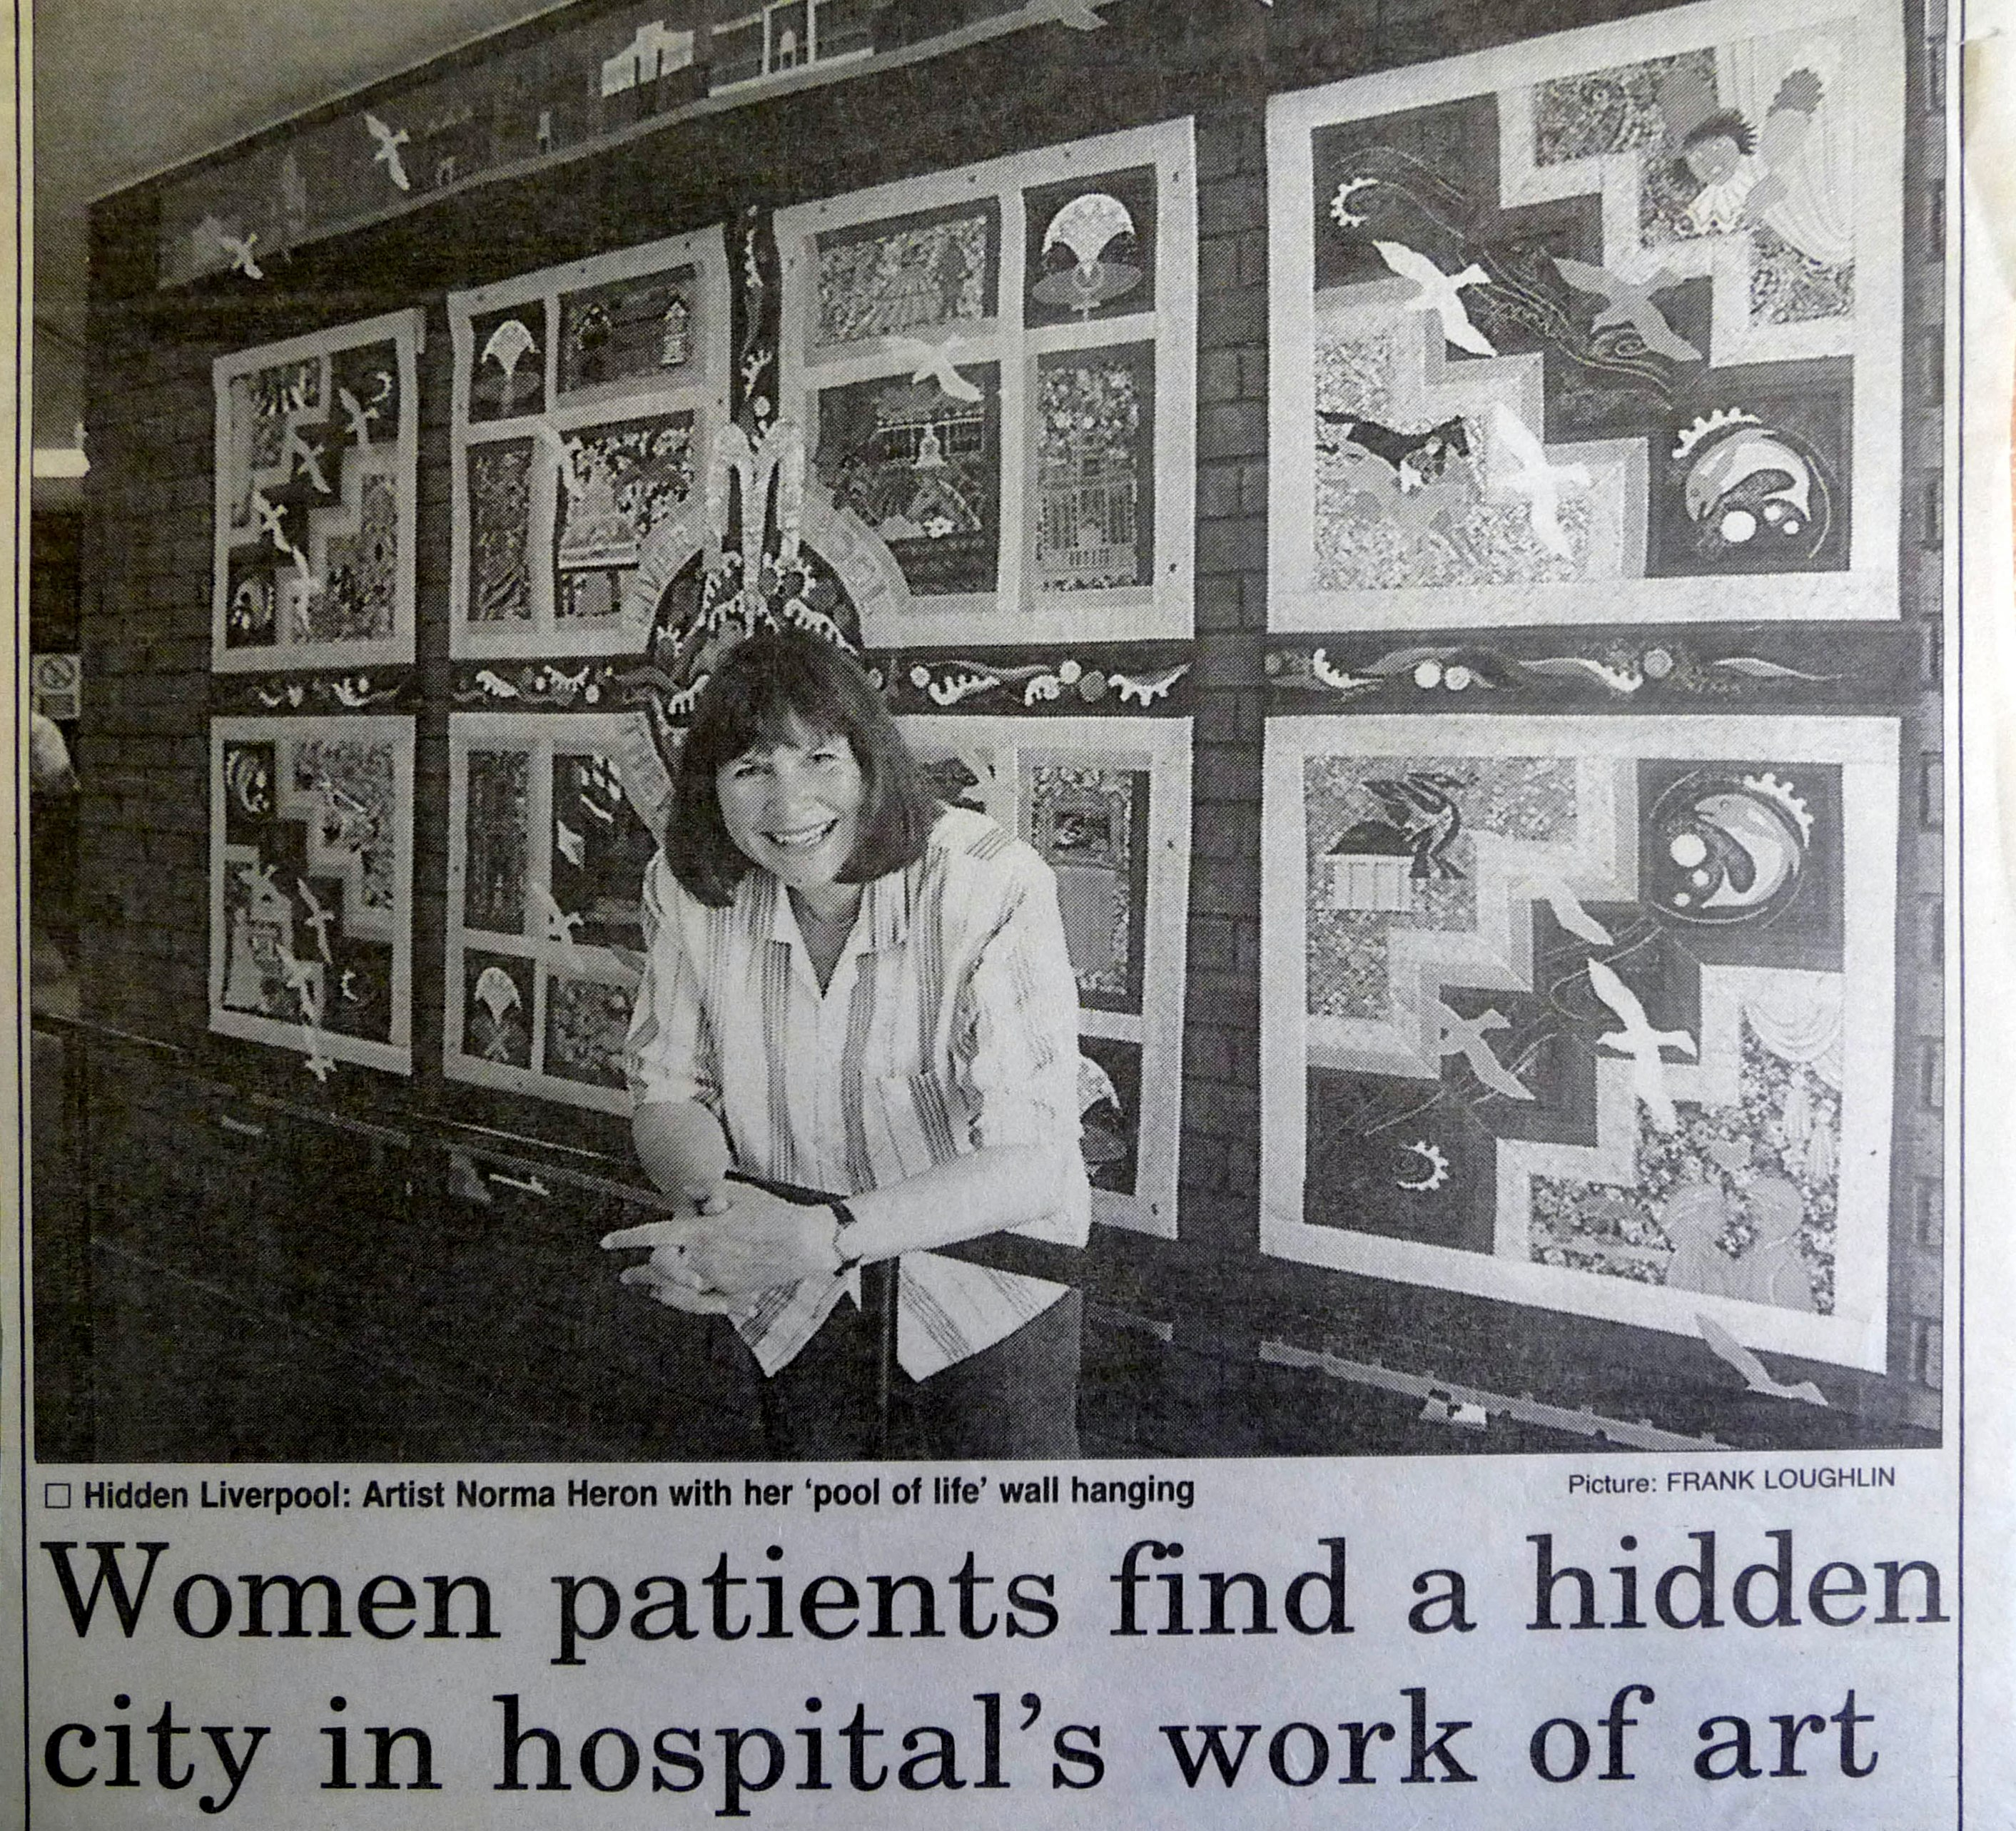 1995 newspaper cutting showing Norma Heron at the launch of her POOL OF LIFE embroidered hanging